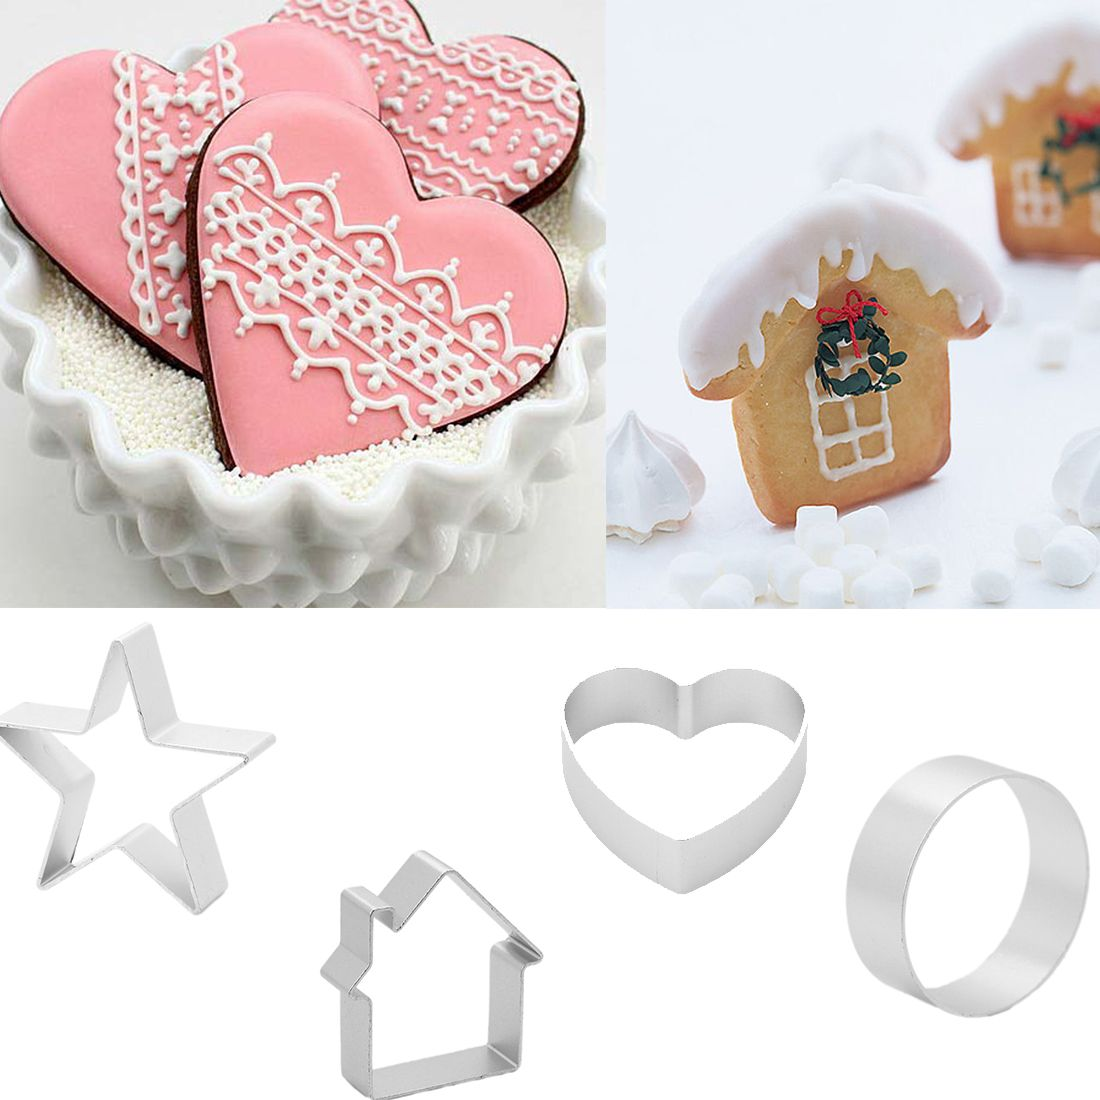 1Pcs/set  DIY Cake cutting Aluminium Alloy Gingerbread Men Shaped Holiday Biscuit Mold Kitchen cake Decorating Tools